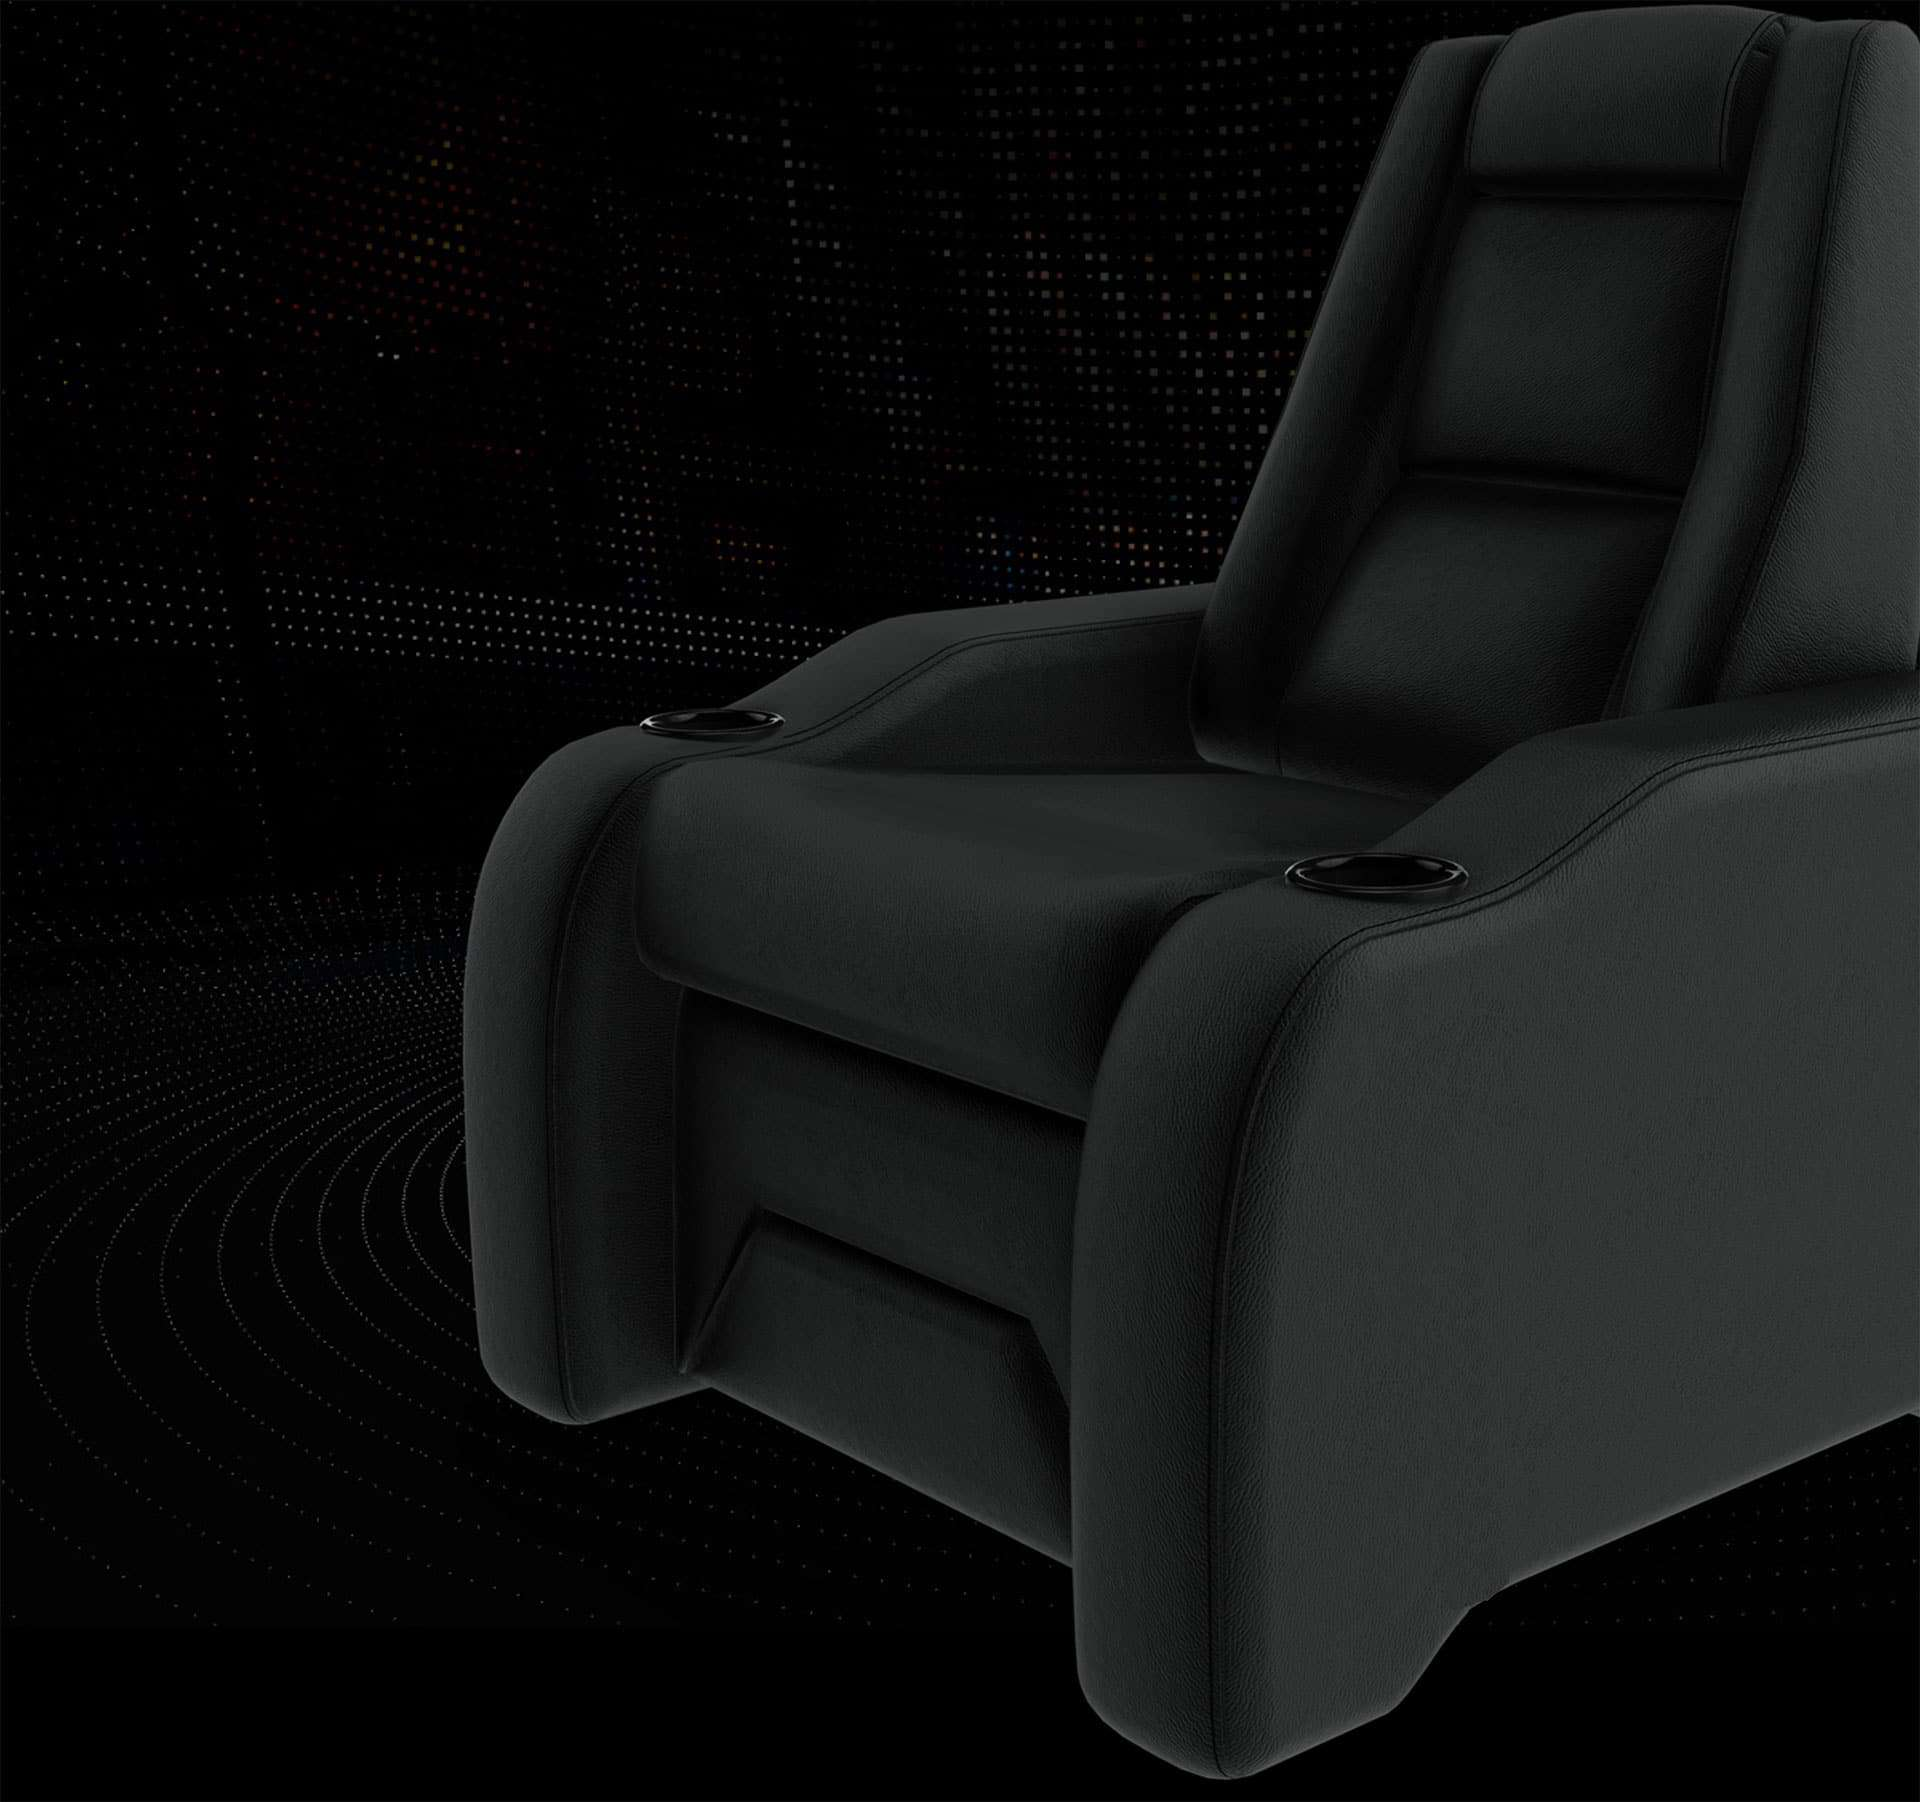 Home theatre chairs black image